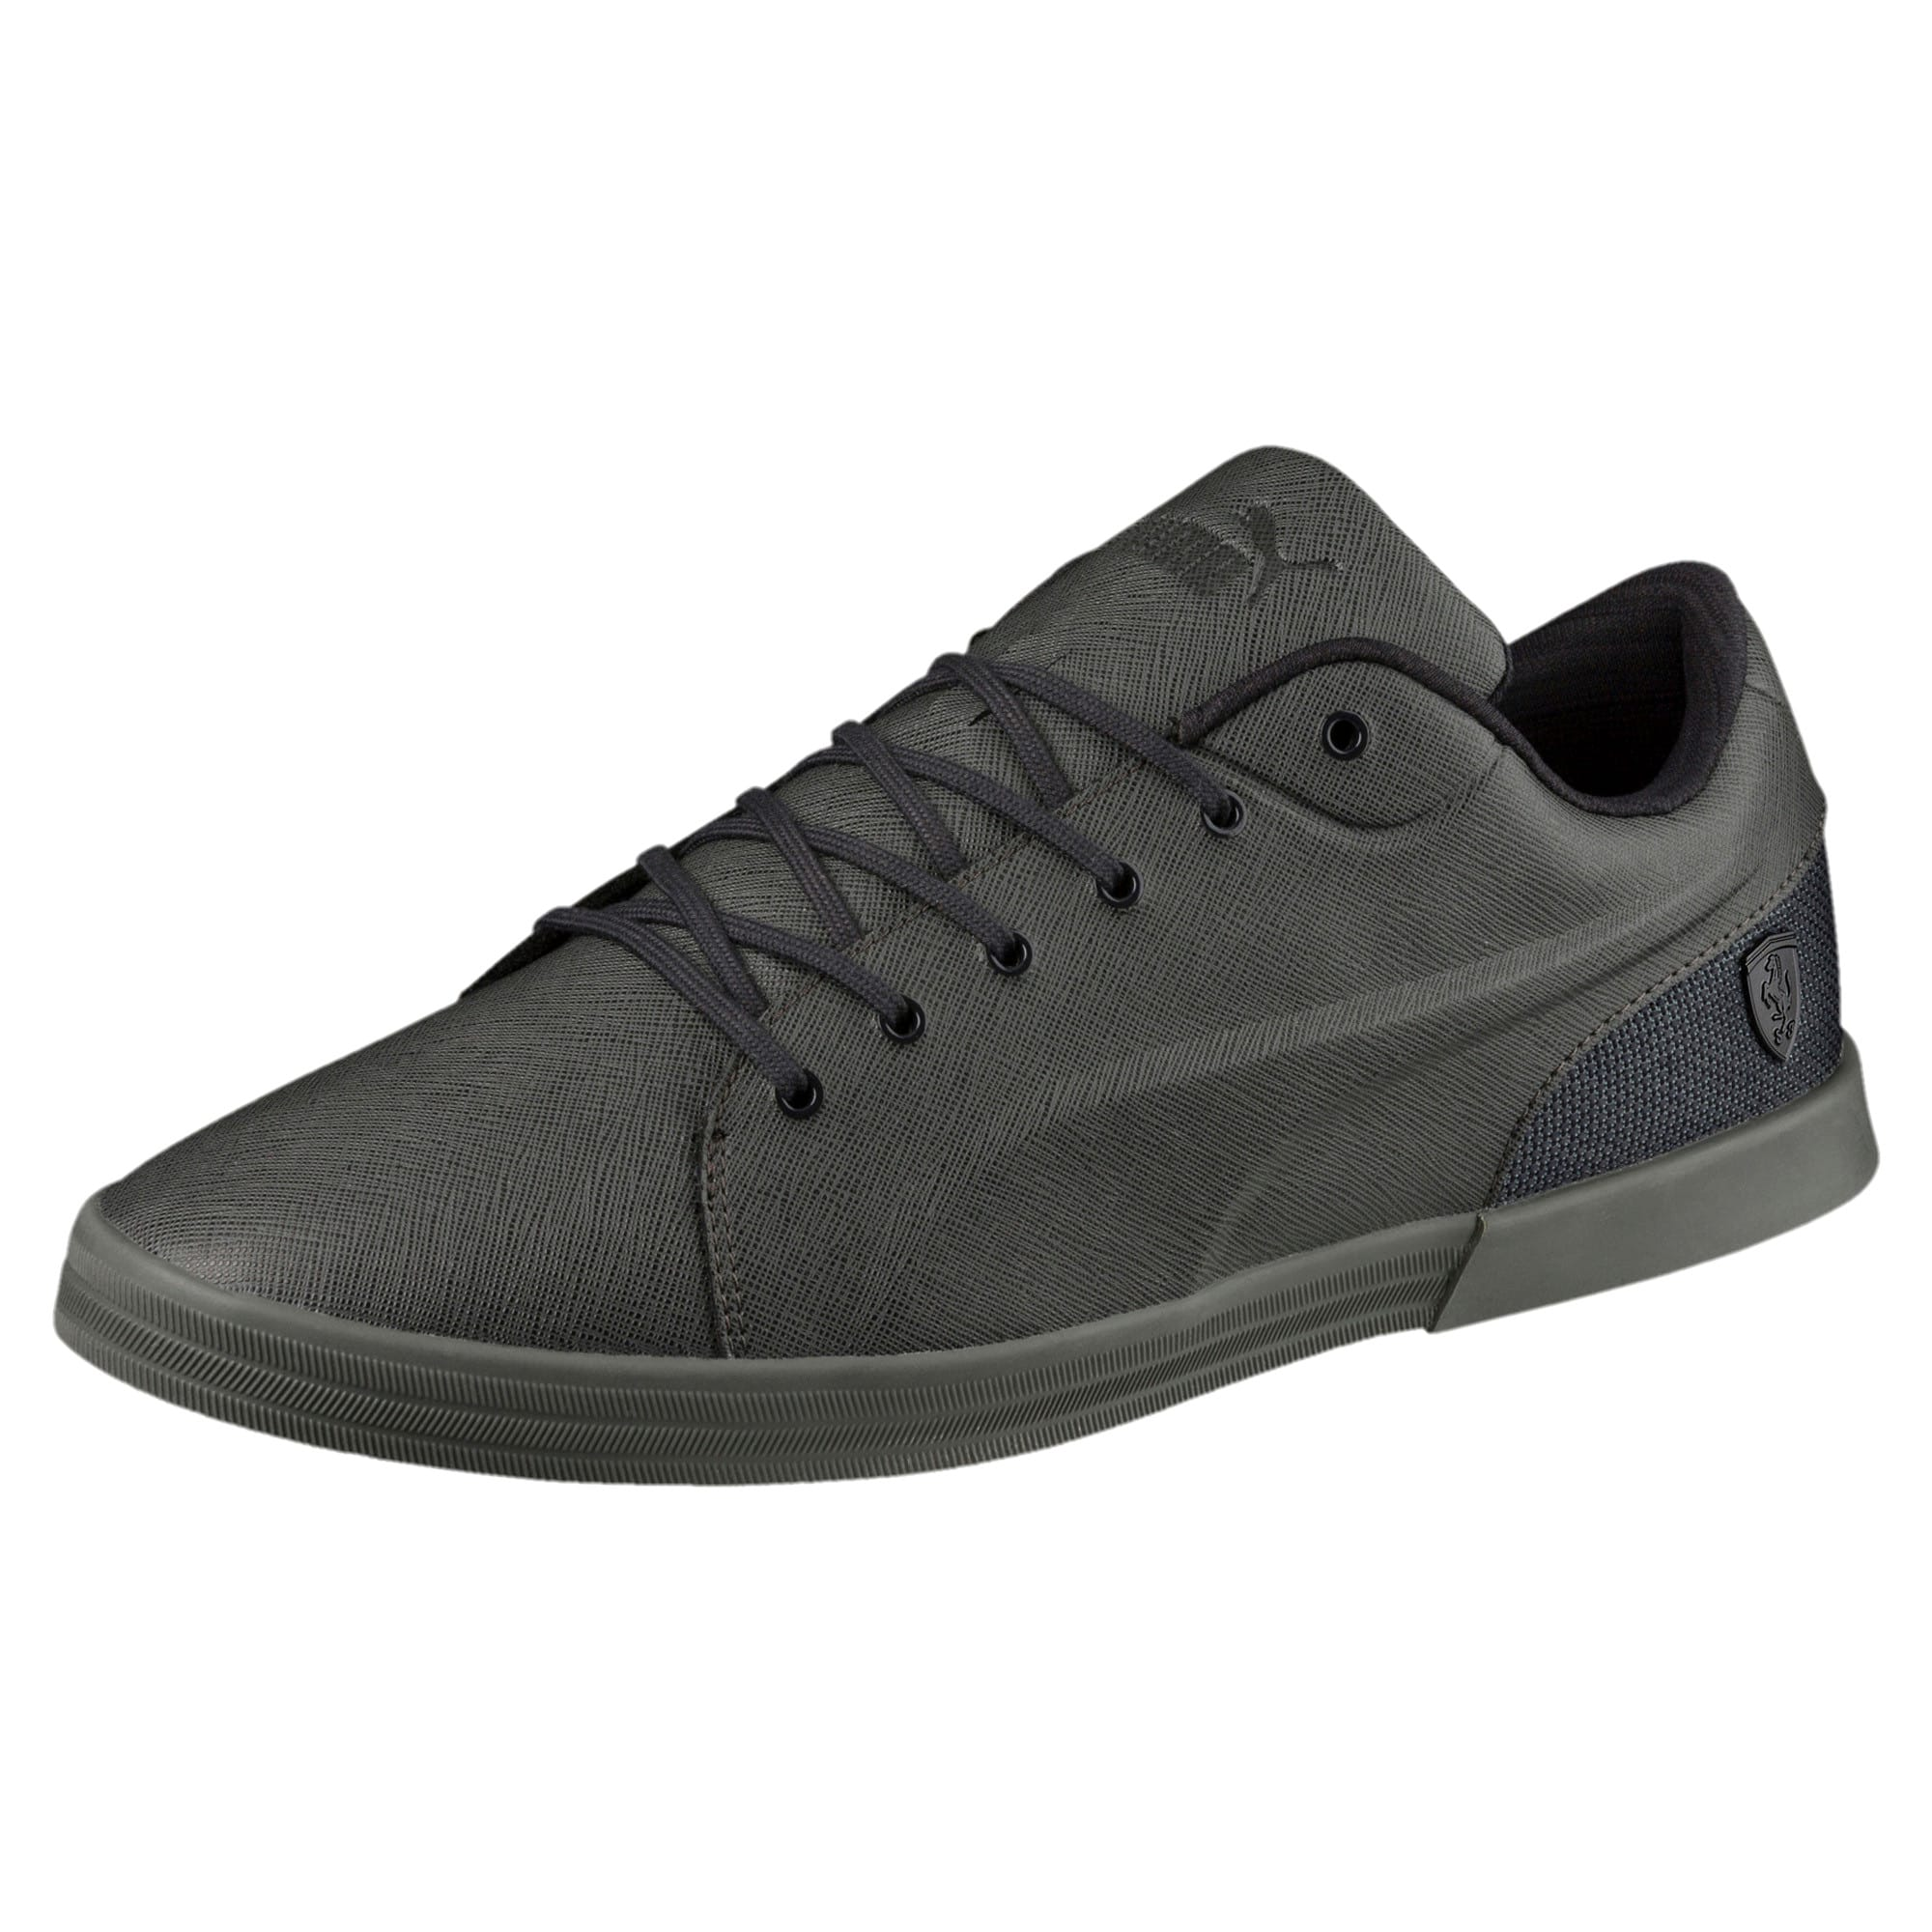 Thumbnail 1 of Ferrari Wayfarer Trainers, Moonless Night-Dark Shadow, medium-IND